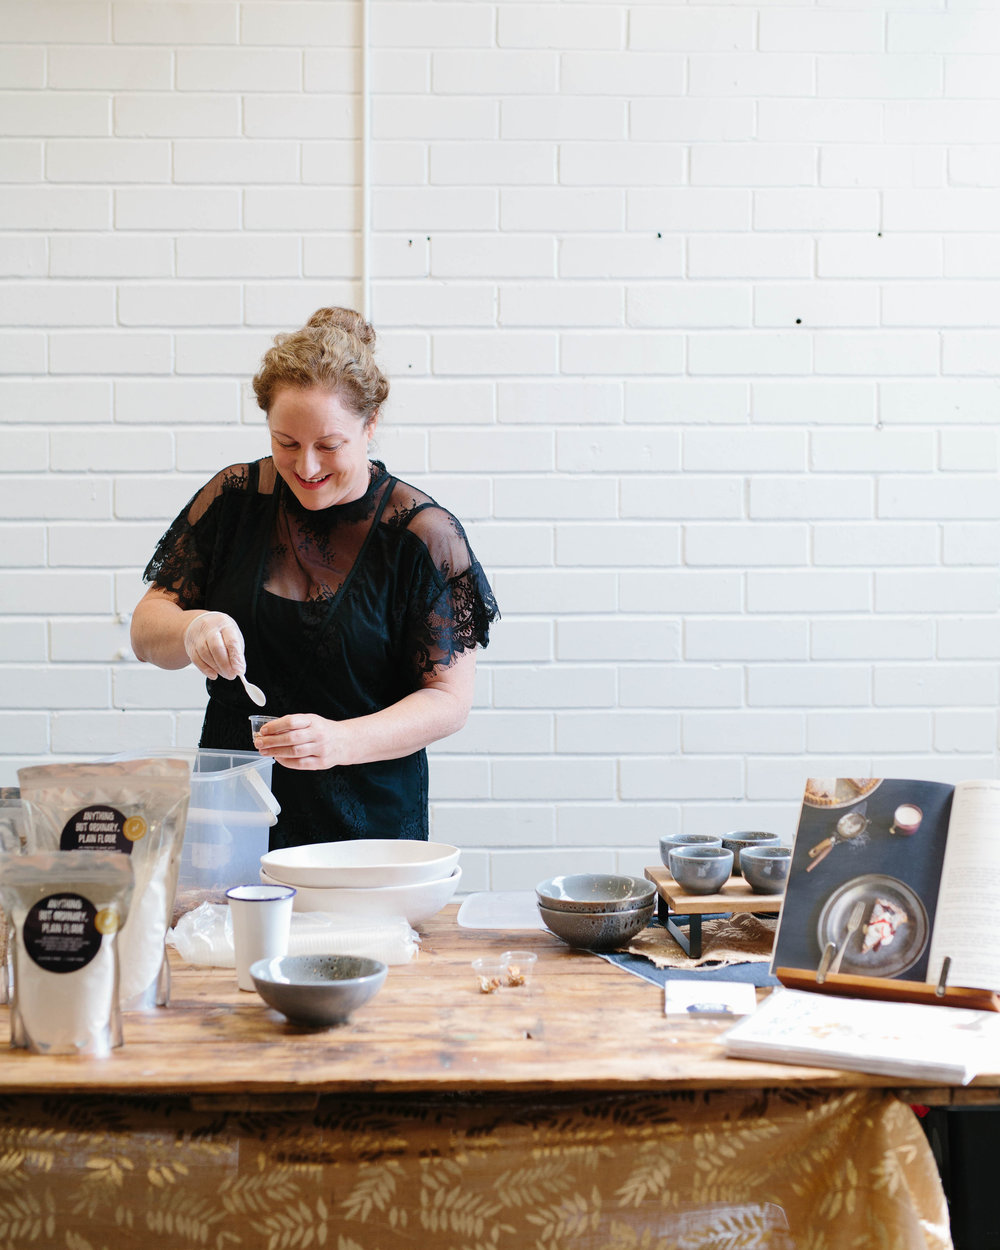 Bake your own granola demo at Stackwood Fremantle. Photo by Rae Fallon